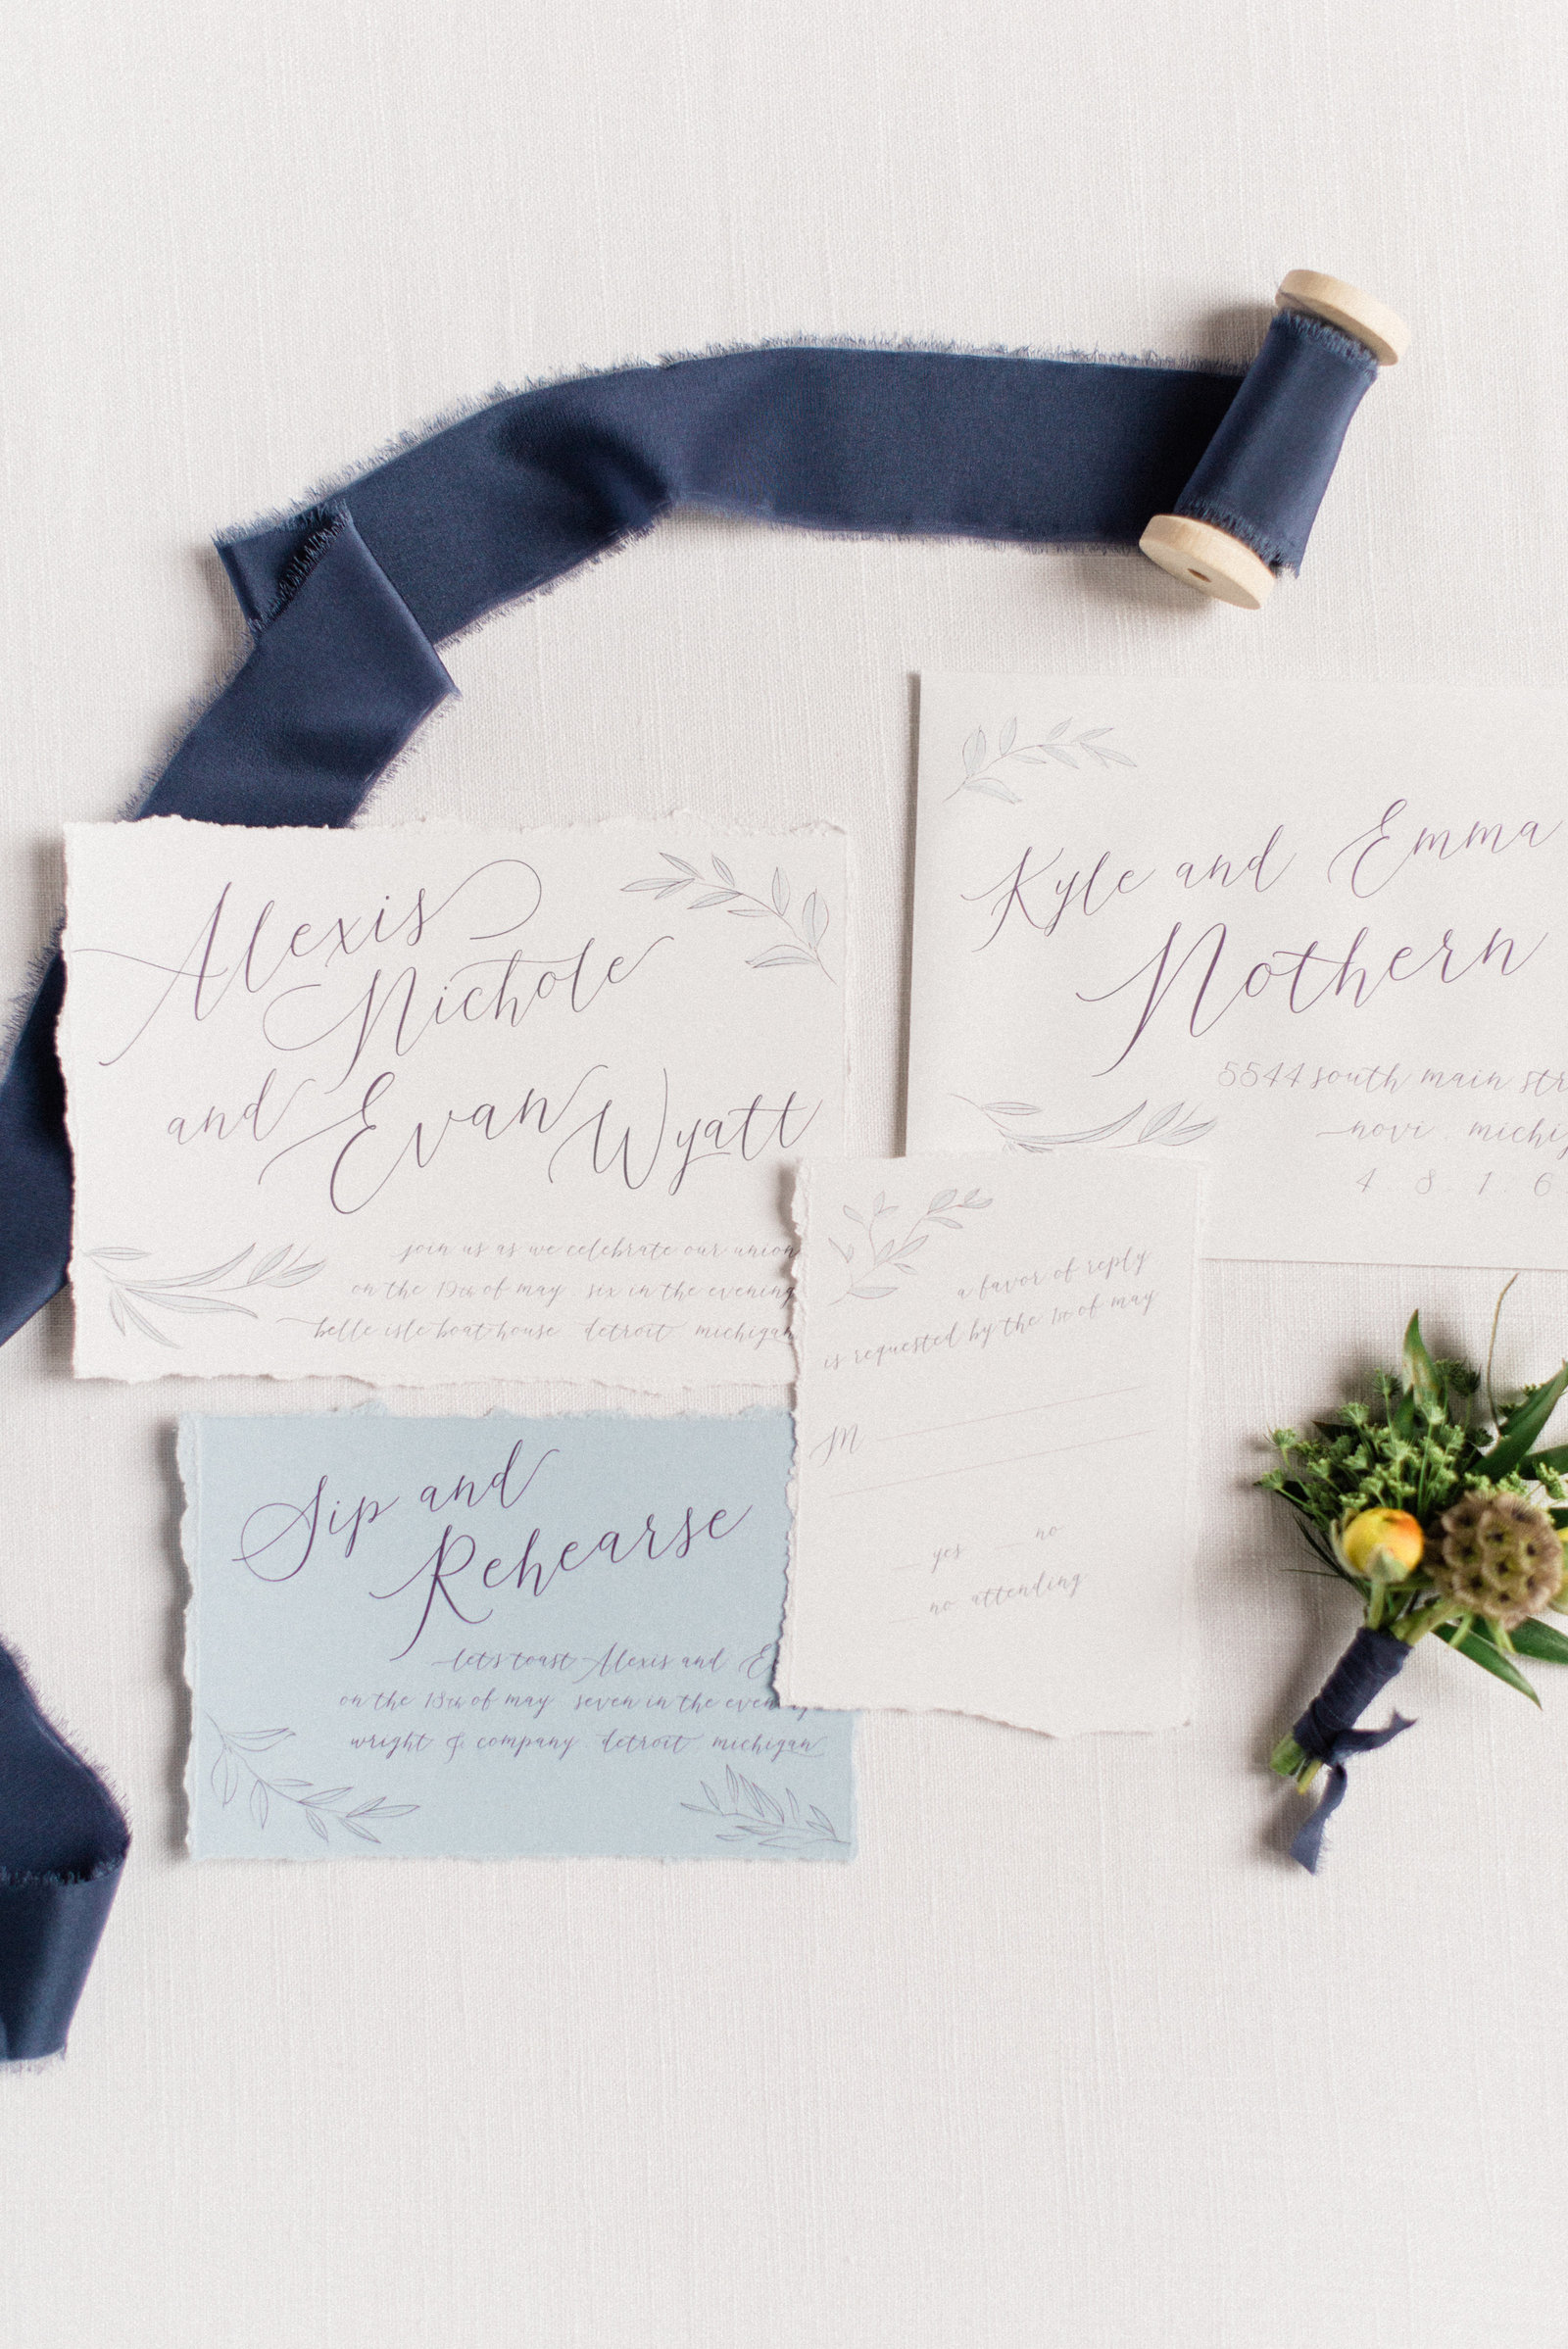 olddetroitweddinginspiration-2